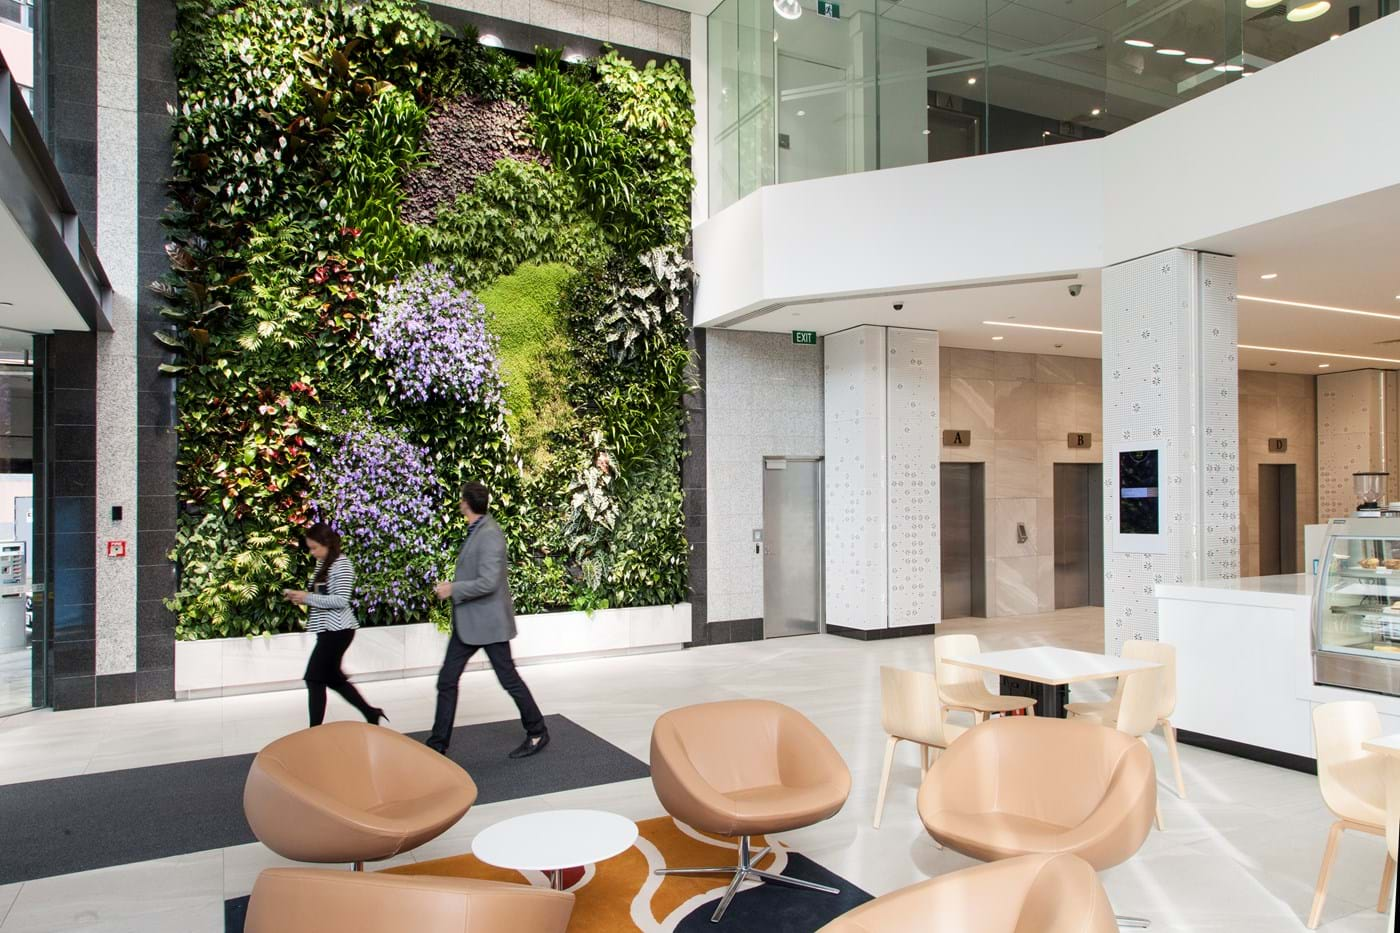 22 Fanshawe St, Auckland: The Green Wall gives the Atrium a fresh, natural environment.